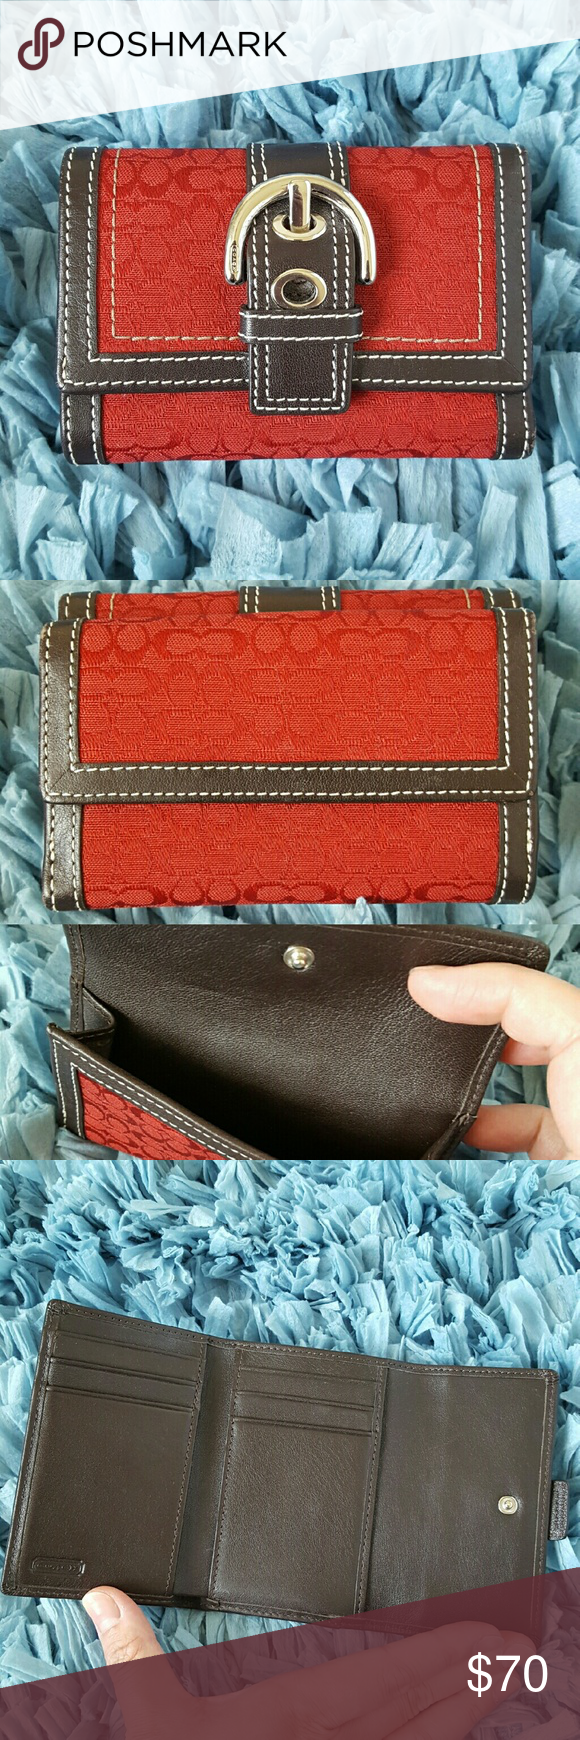 """Coach Signature Trifold Wallet This wallet features a dark red Coach Signature print with dark brown leather trims, front buckle design and coin holder. Interior features credit card slots and pockets for cash and miscellaneous. Pre-loved and in excellent condition with minor signs of use around the edges. Dimensions when closed and empty is 4.5"""" x 3"""" x 1.25"""". Dimensions when open is 4.5"""" x 8.5"""". Coach Bags Wallets"""